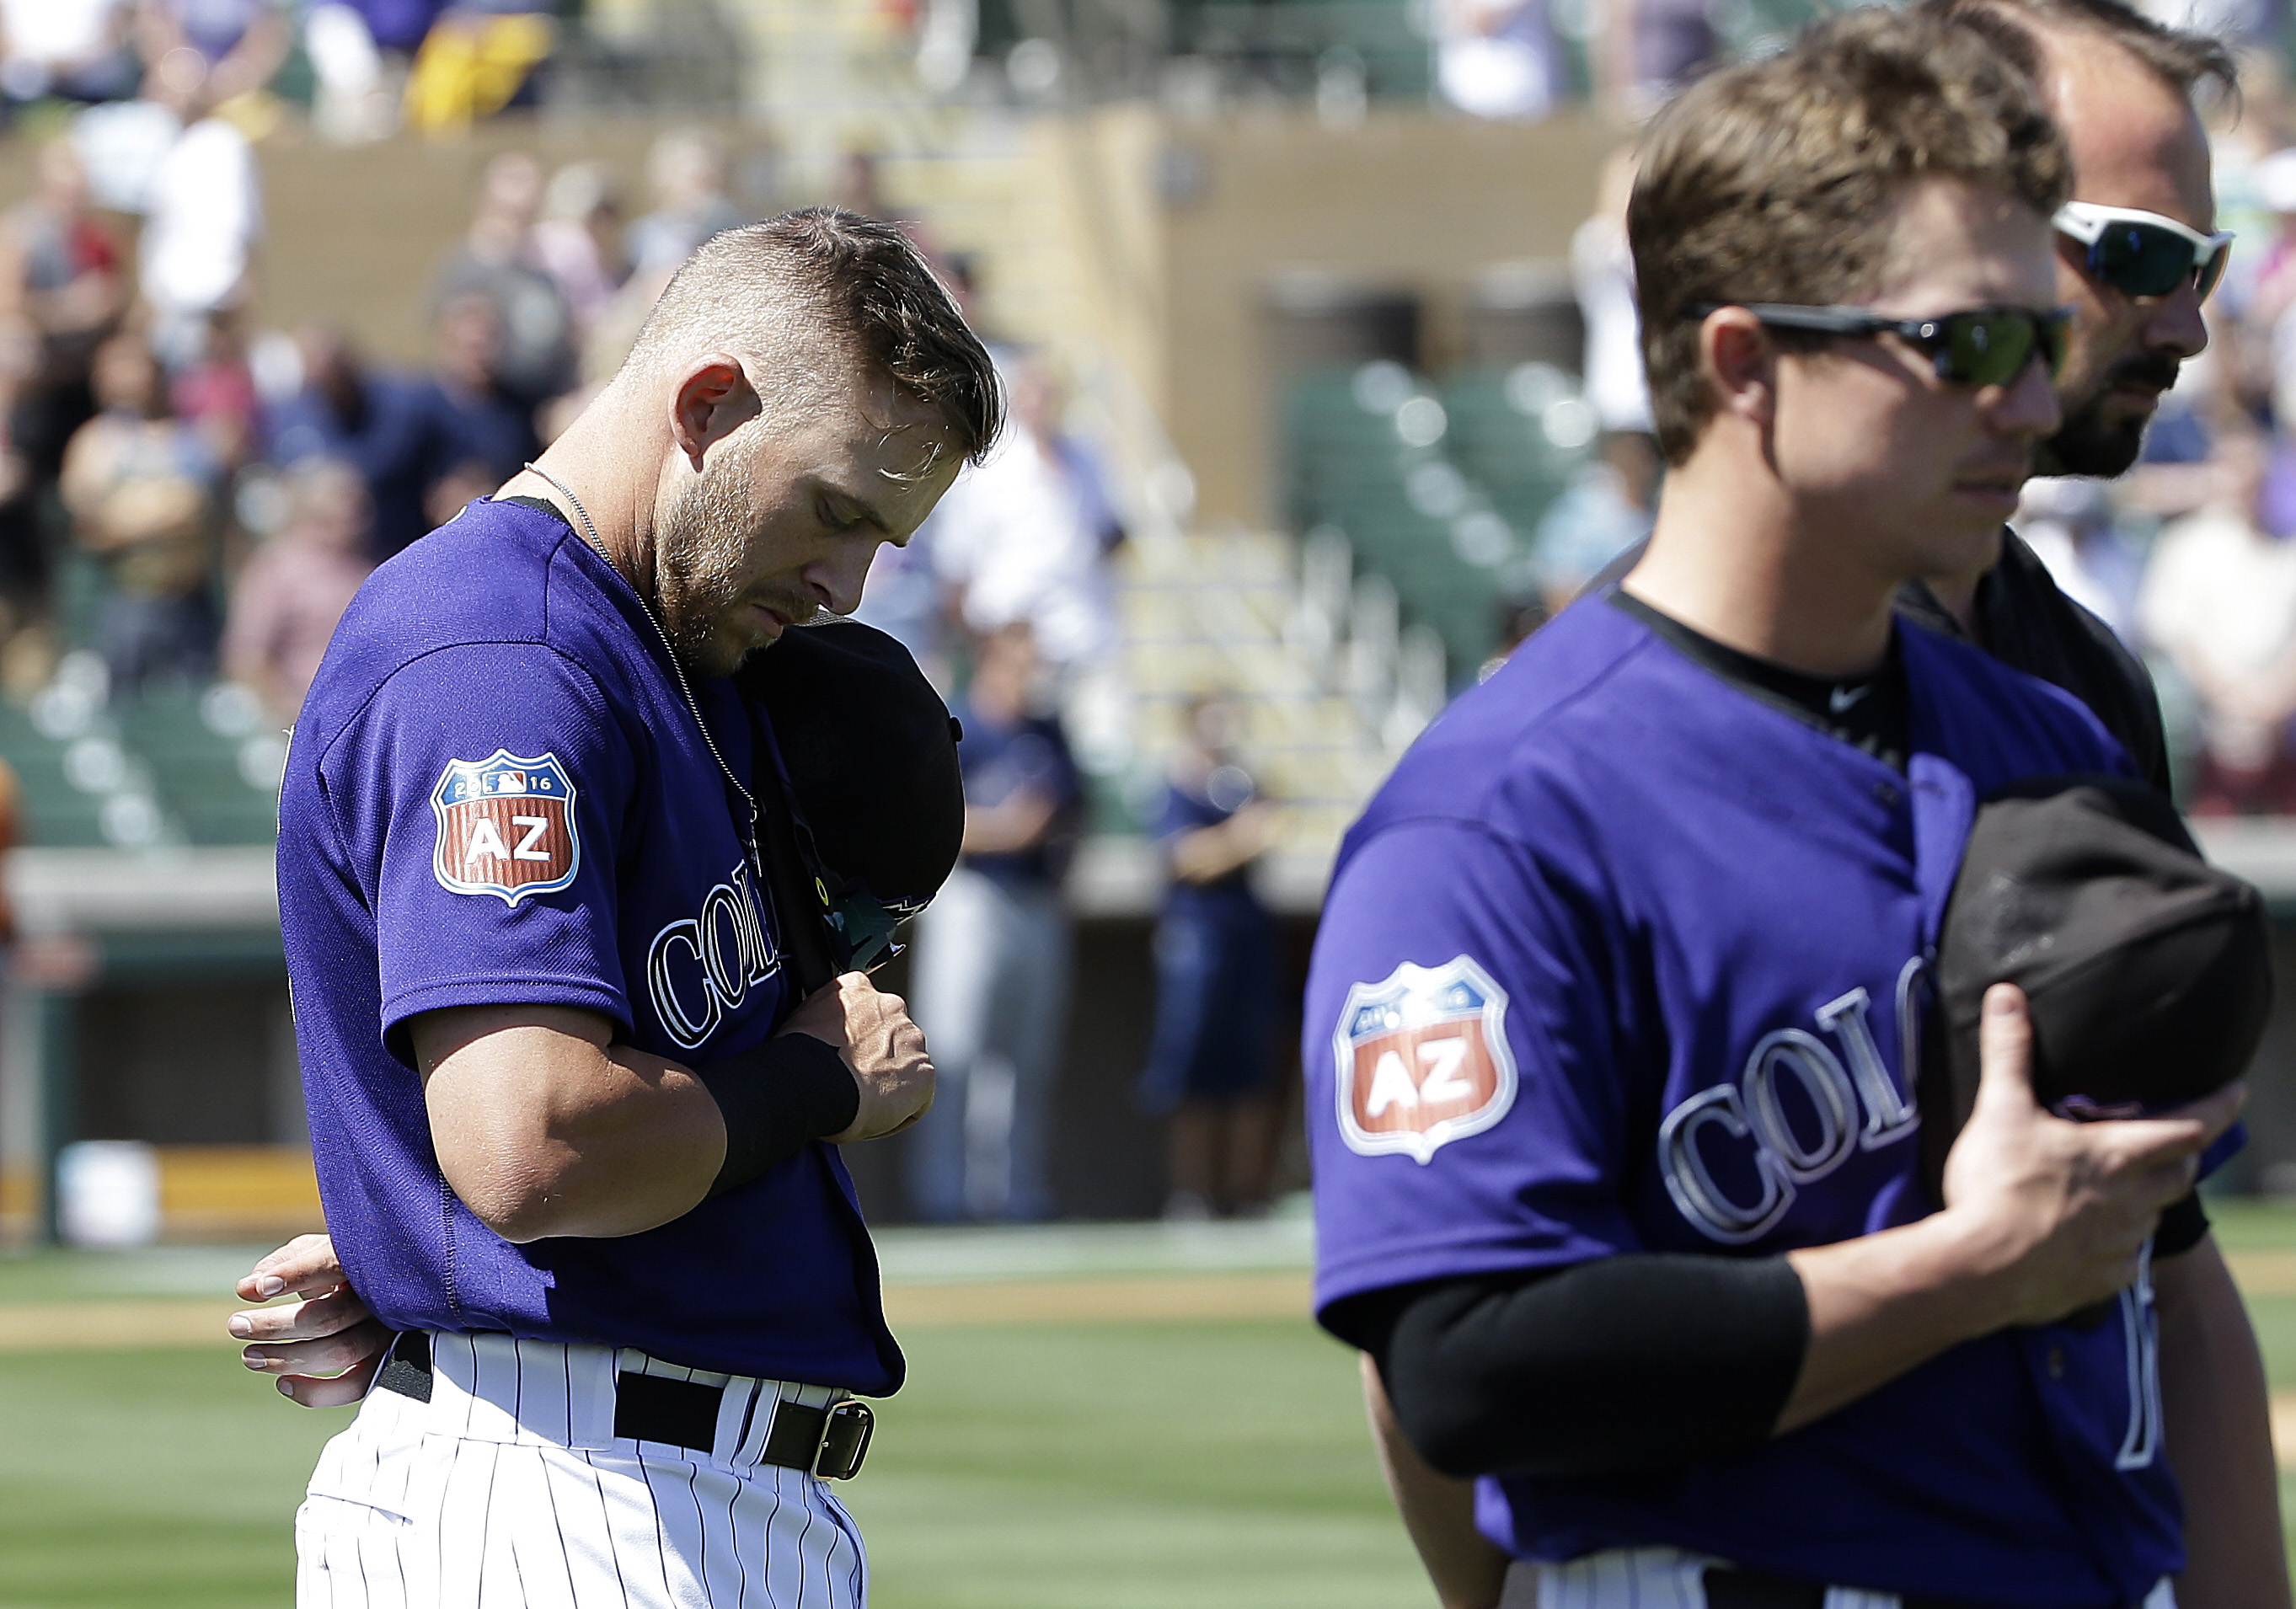 Colorado Rockies' Trevor Story, left, and Ryan Casteel observe a moment of silence for the victims of attacks in Brussels, Belgium, before a spring training baseball game between the Rockies and the Milwaukee Brewers in Scottsdale, Ariz., Tuesday, March 2